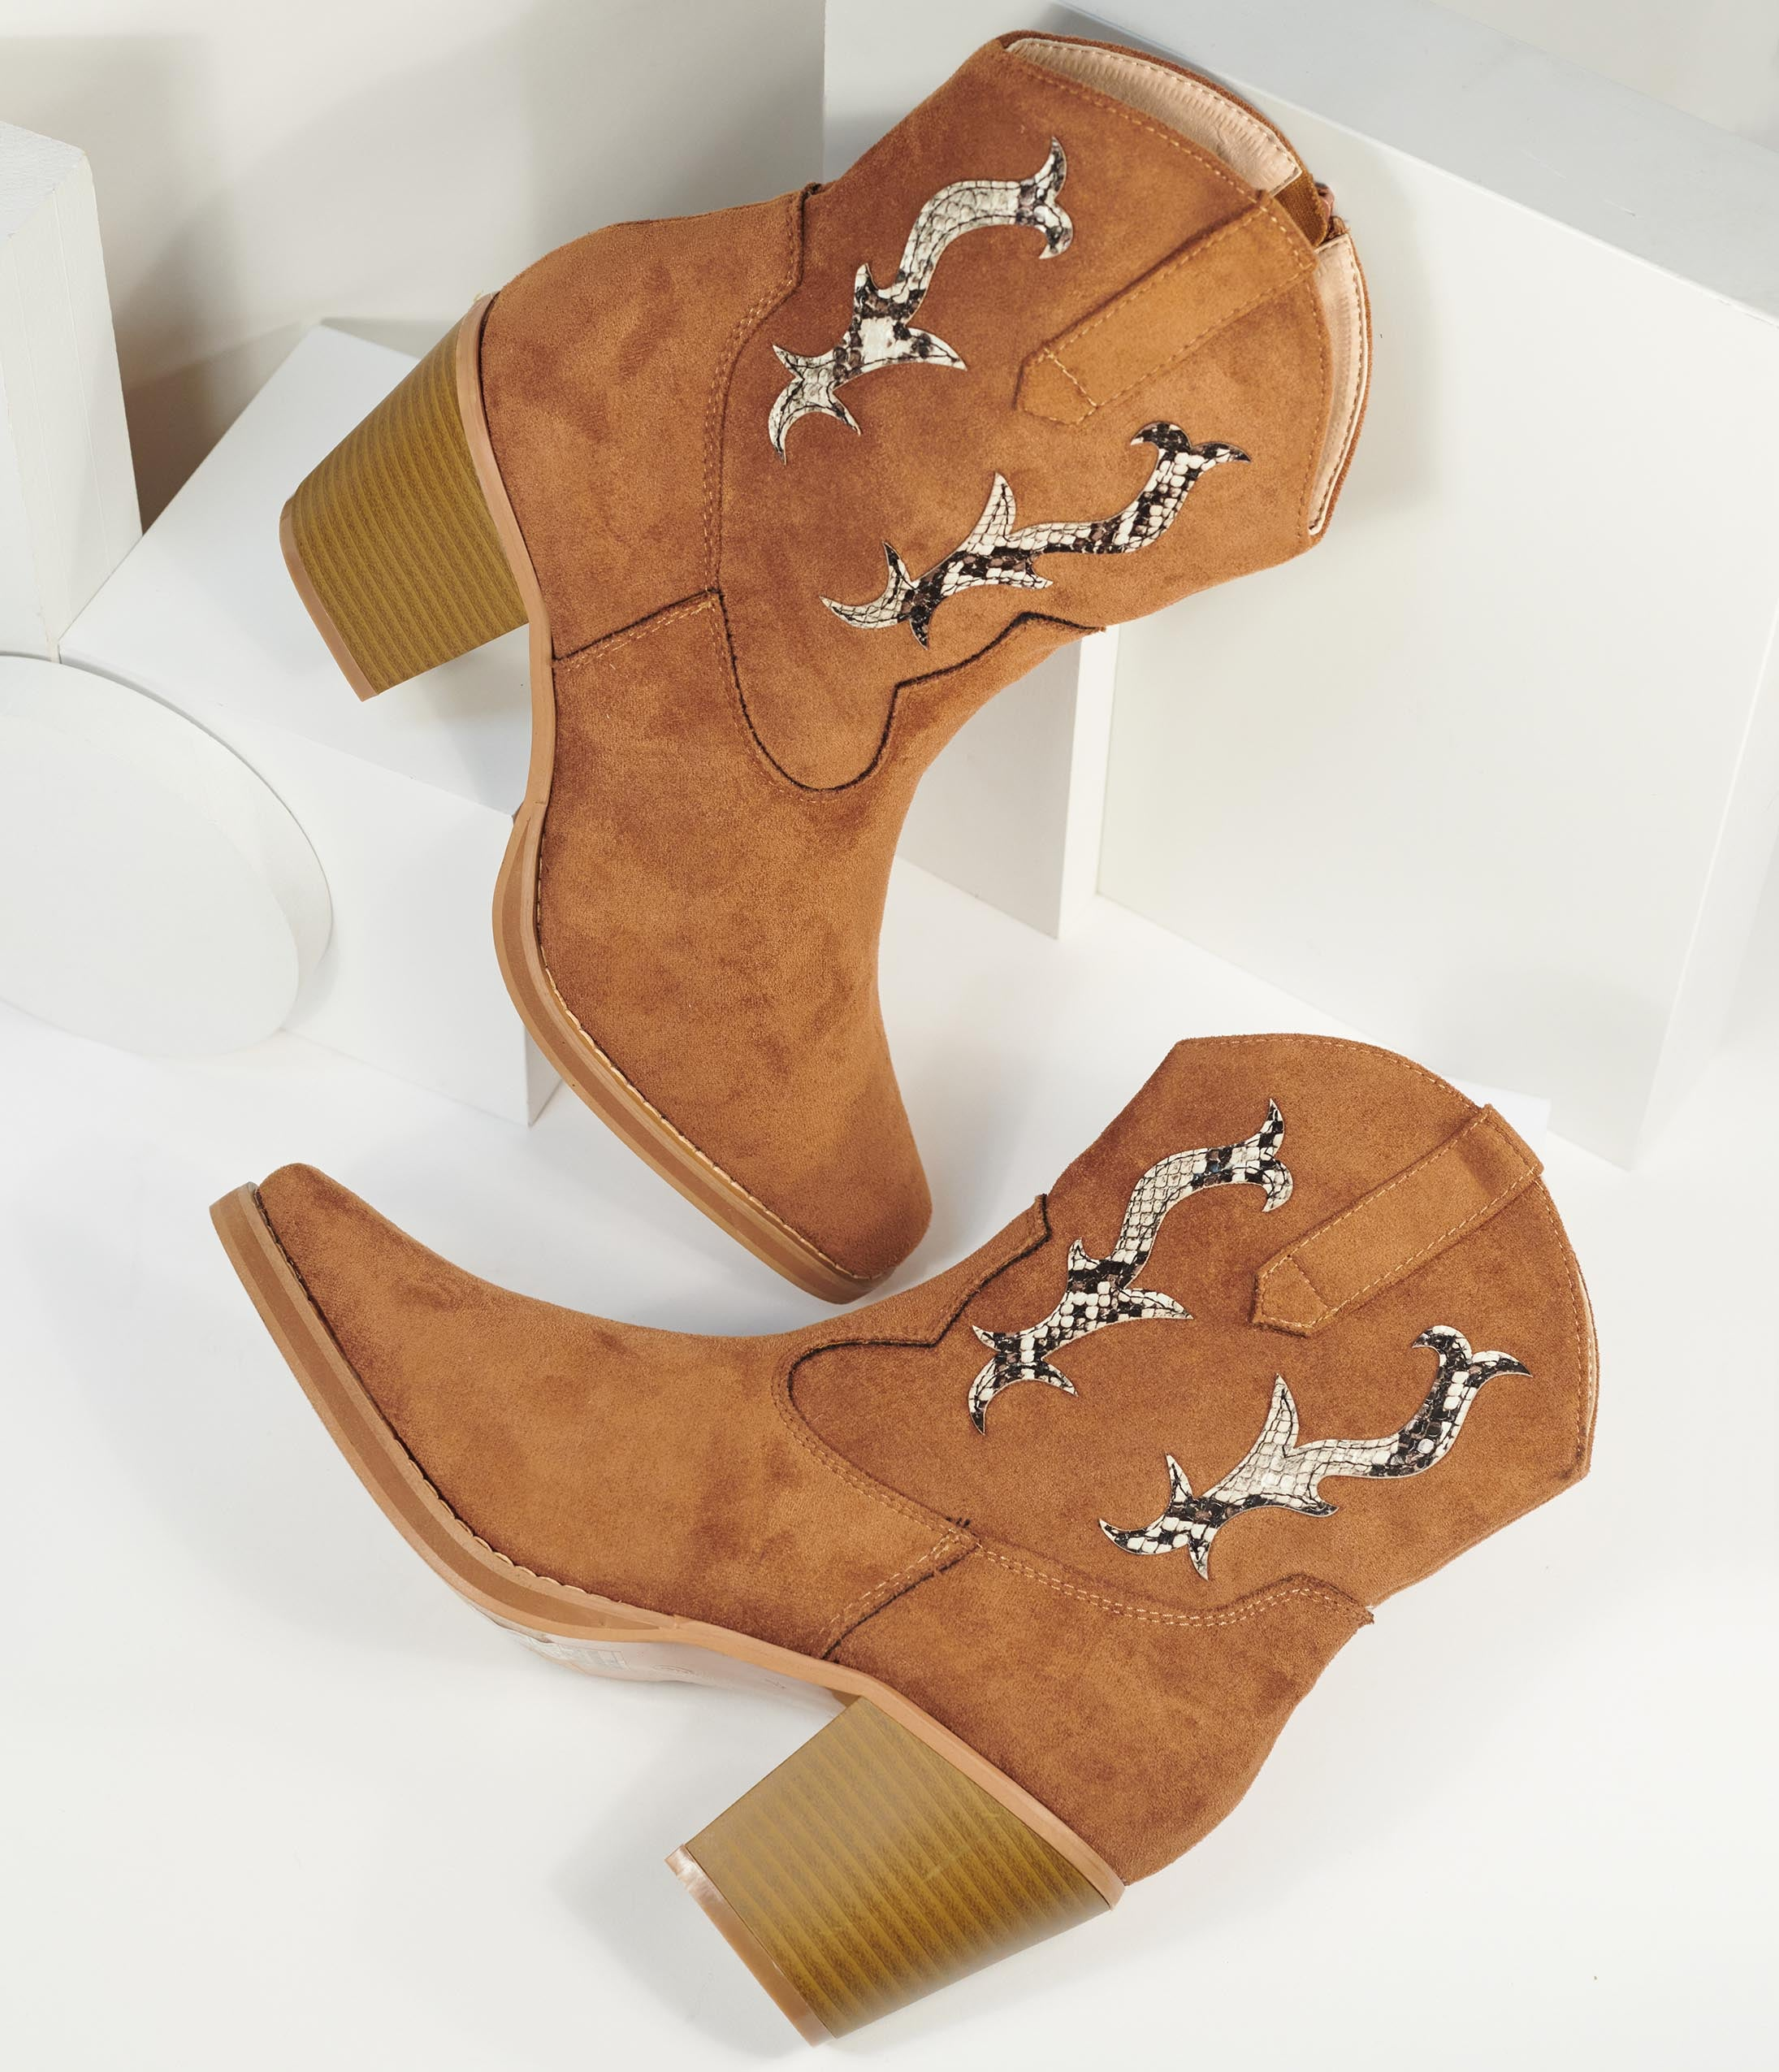 Vintage Western Wear Clothing, Outfit Ideas Brown Suede Western Cowboy Boots $68.00 AT vintagedancer.com